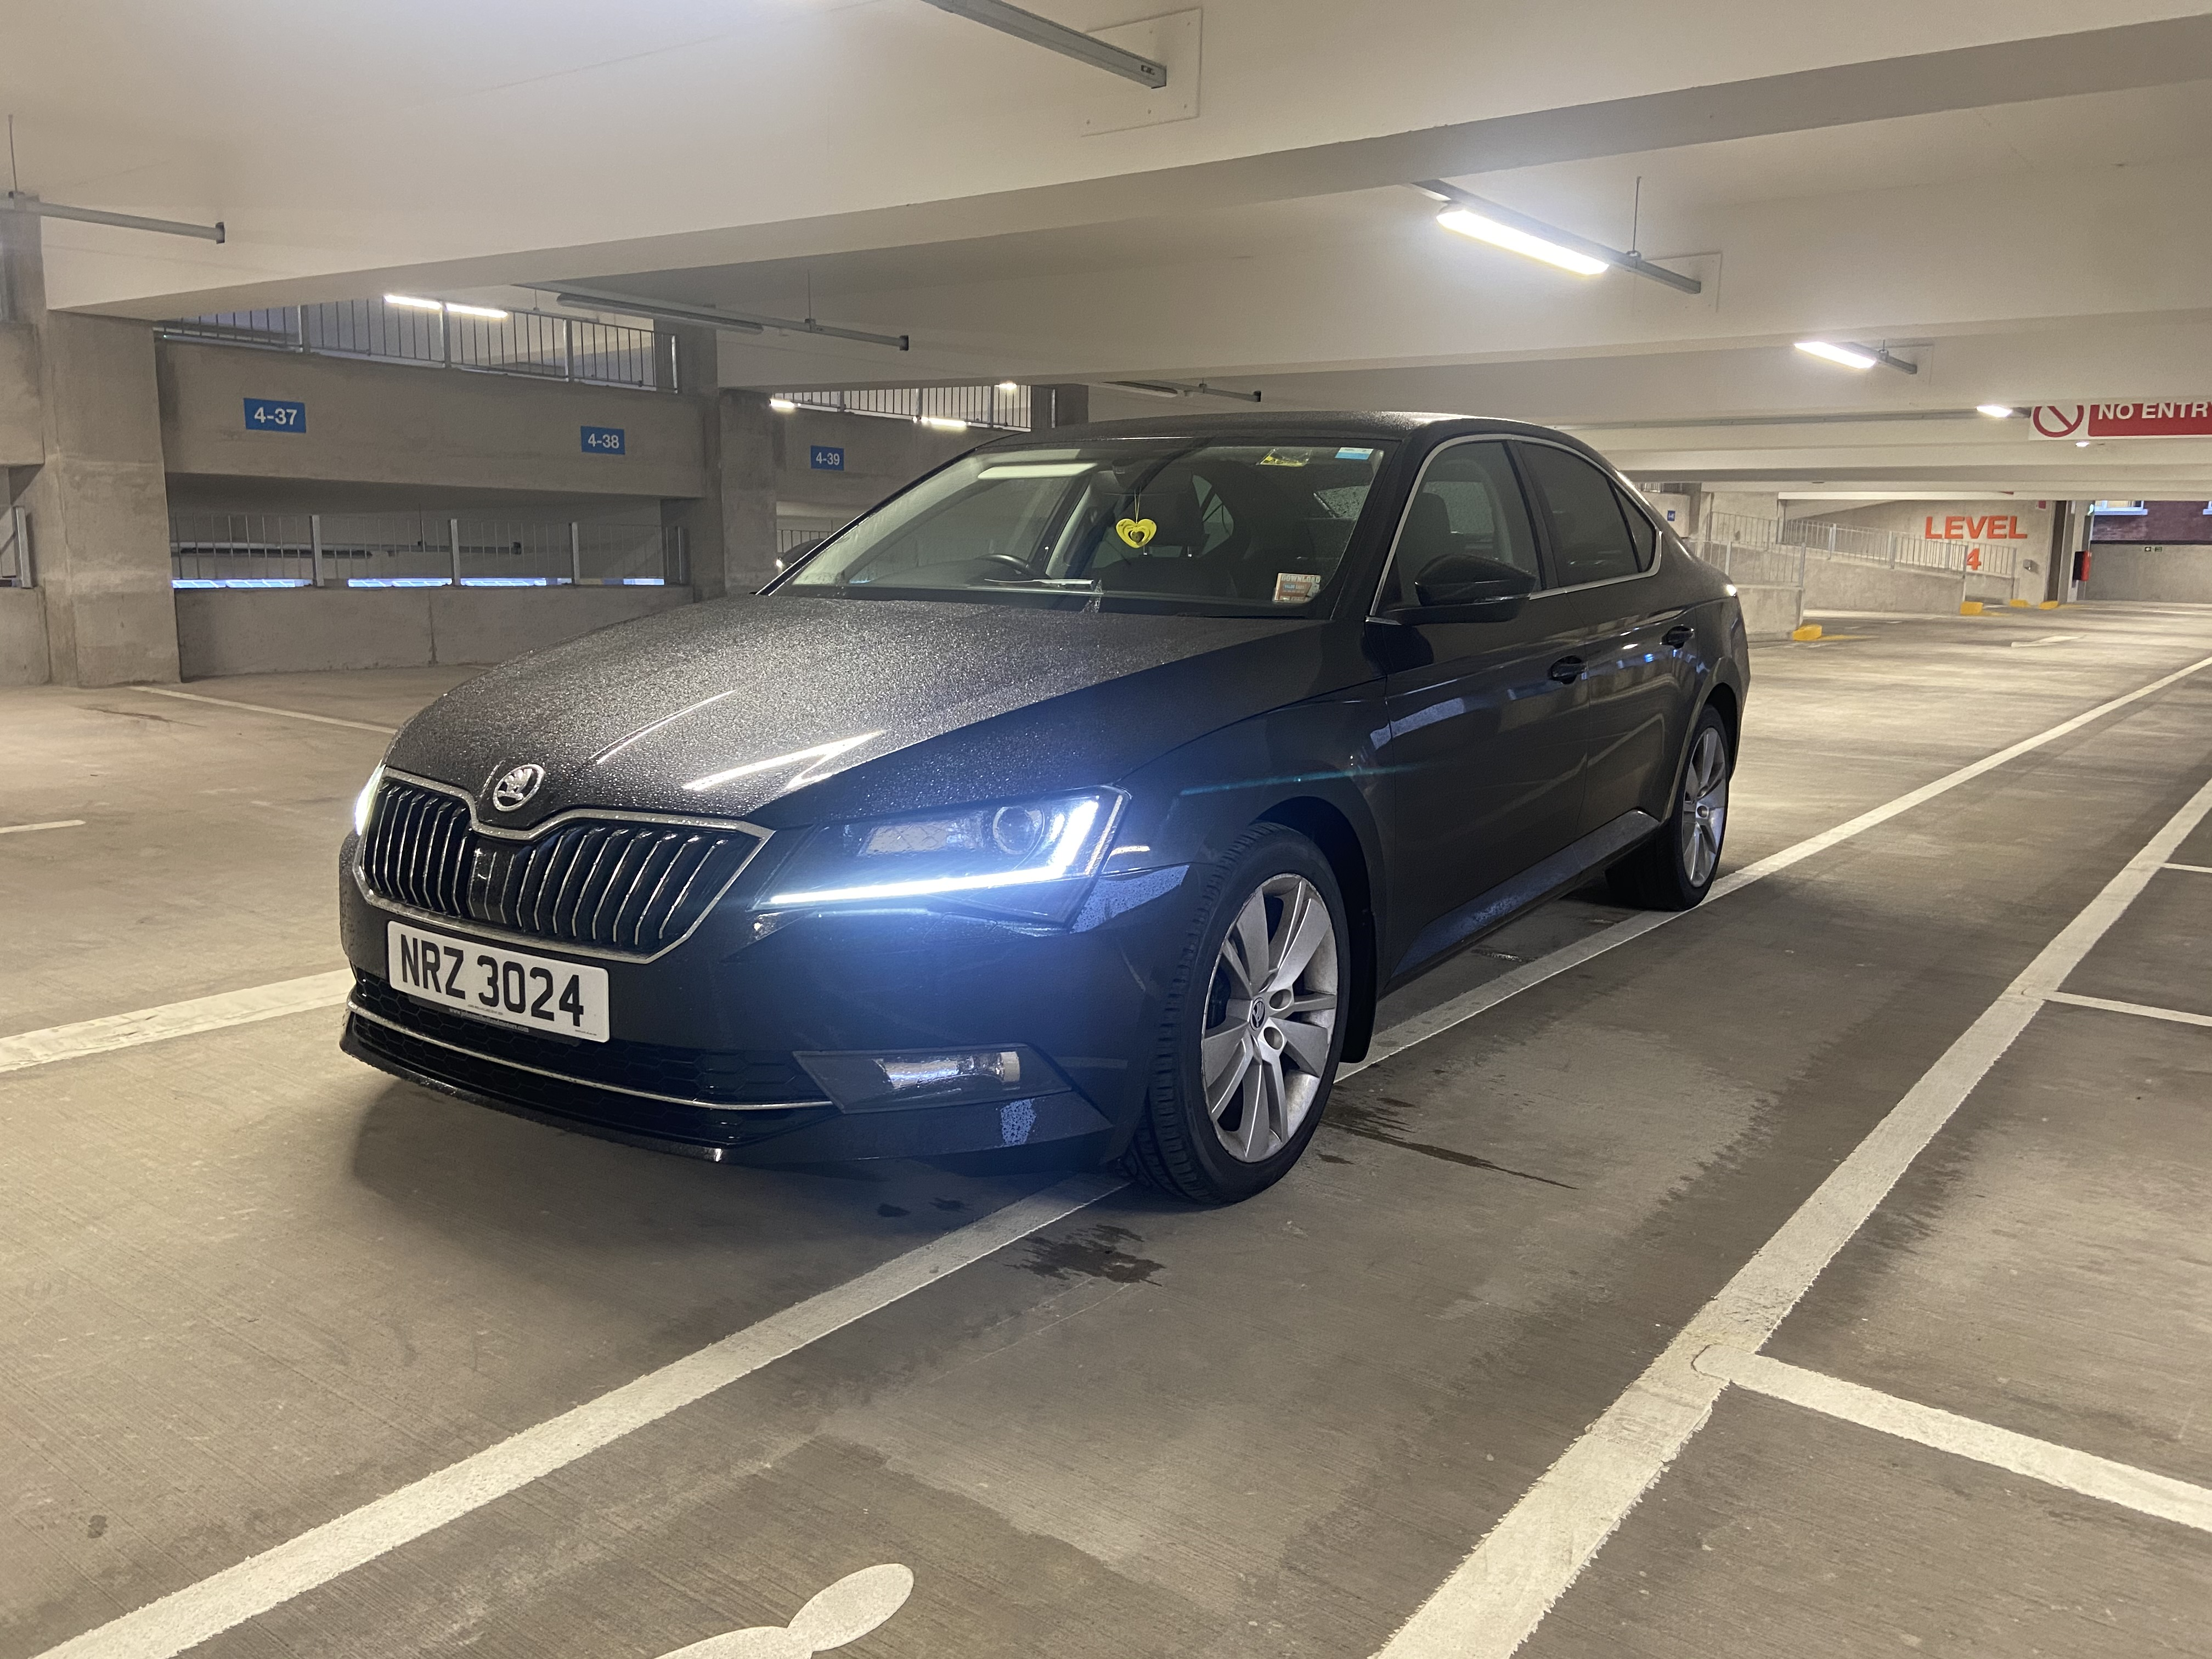 2018 Skoda Superb SEL Executive 2.0 TDI Auto full